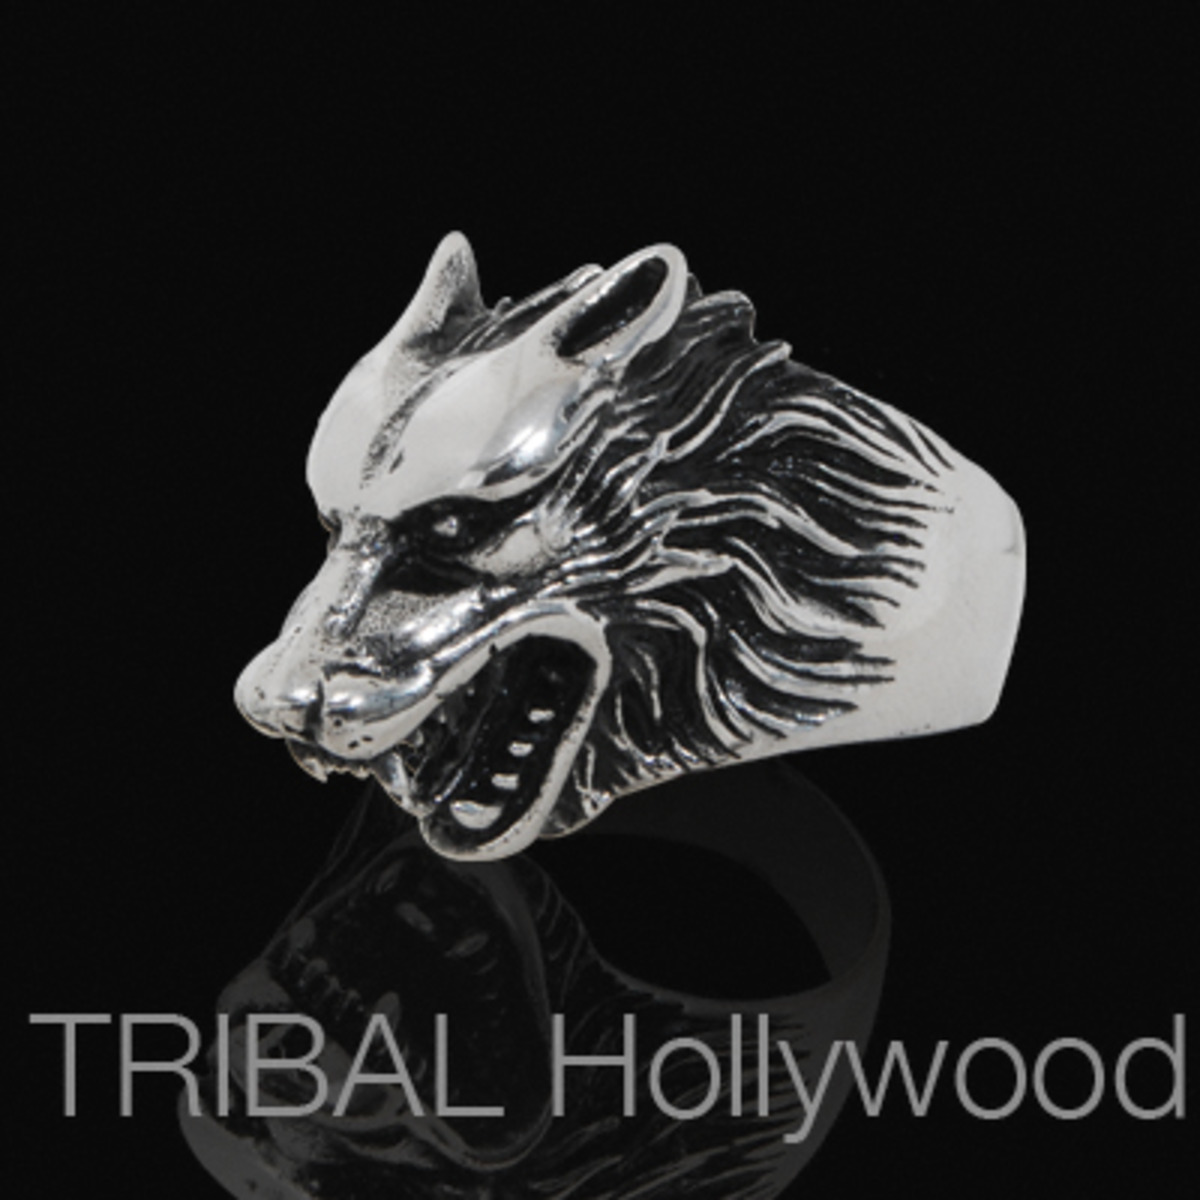 THE WOLF Ring Stainless Steel Wolf's Head Ring for Men | Tribal Hollywood